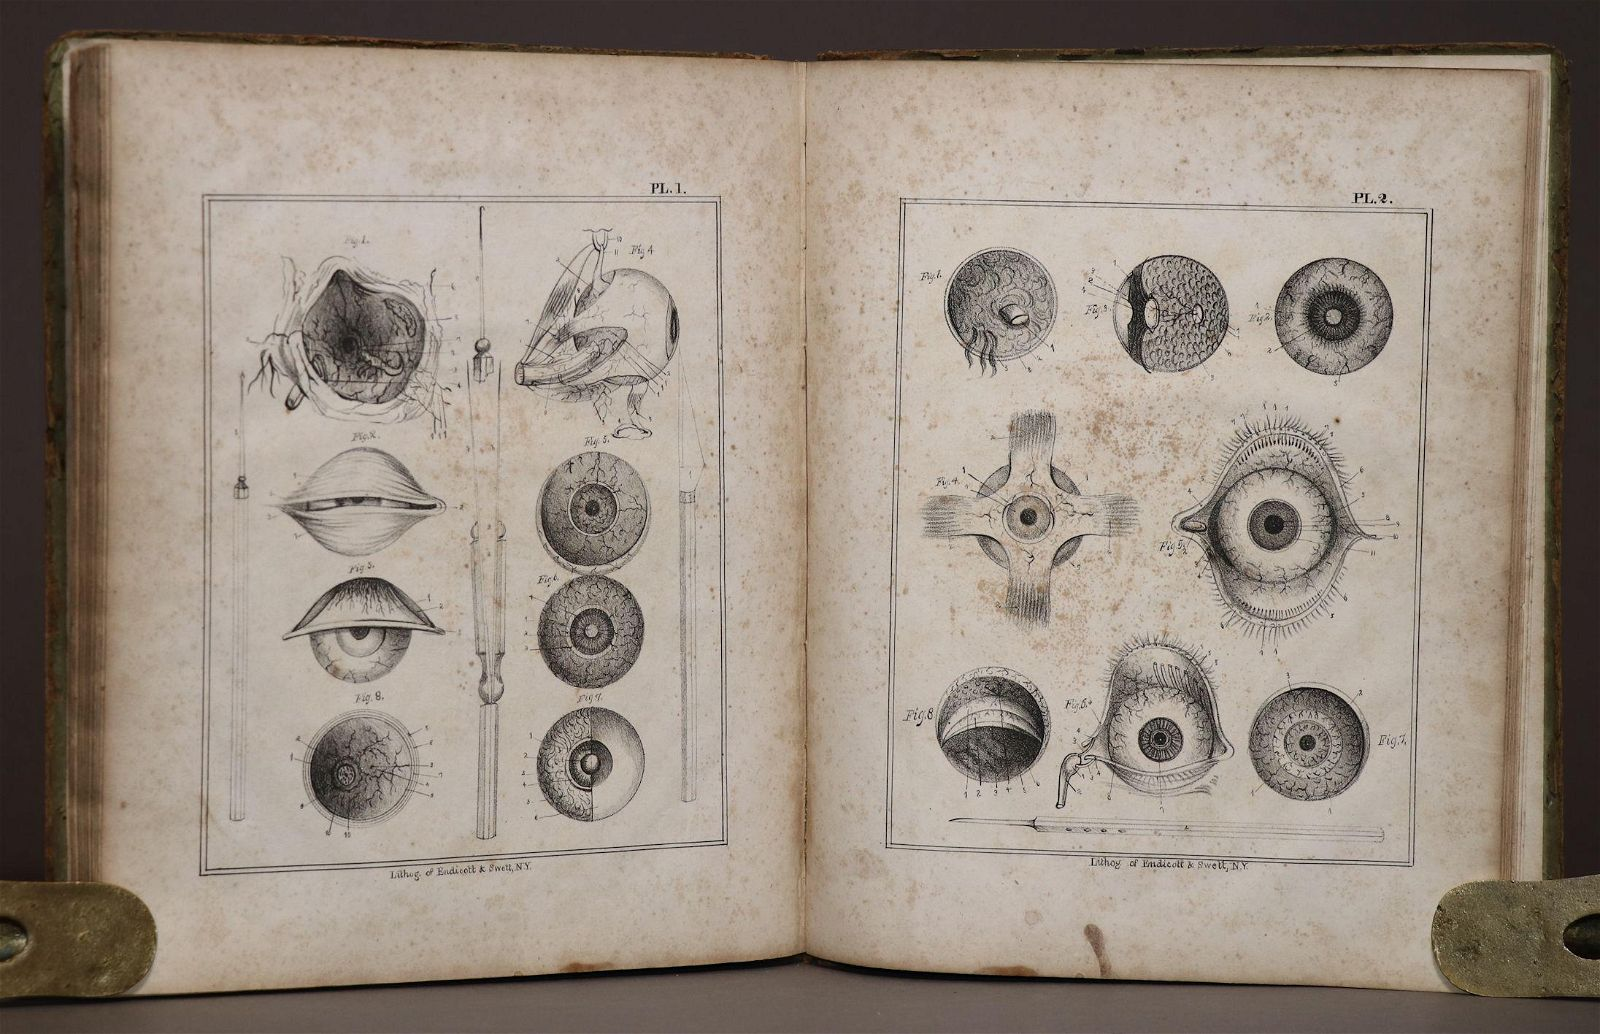 [Early American Ophthalmology, 1832]